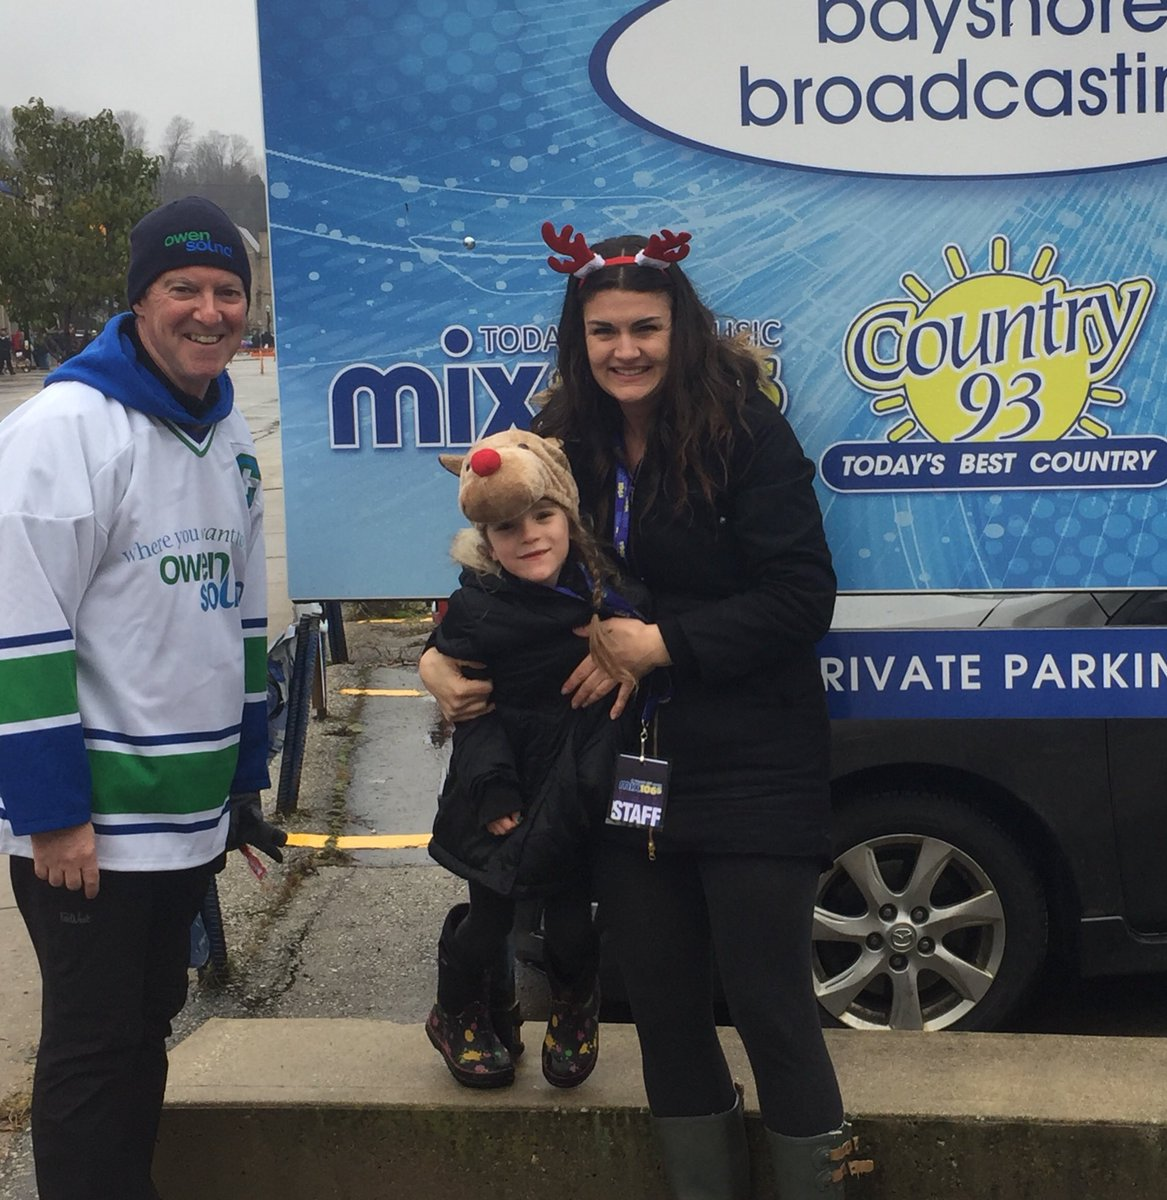 Always great running into so many familiar faces at the #owensound #santaclaus #parade! - Jamie @ian_boddy<br>http://pic.twitter.com/p1FRhxW9GH